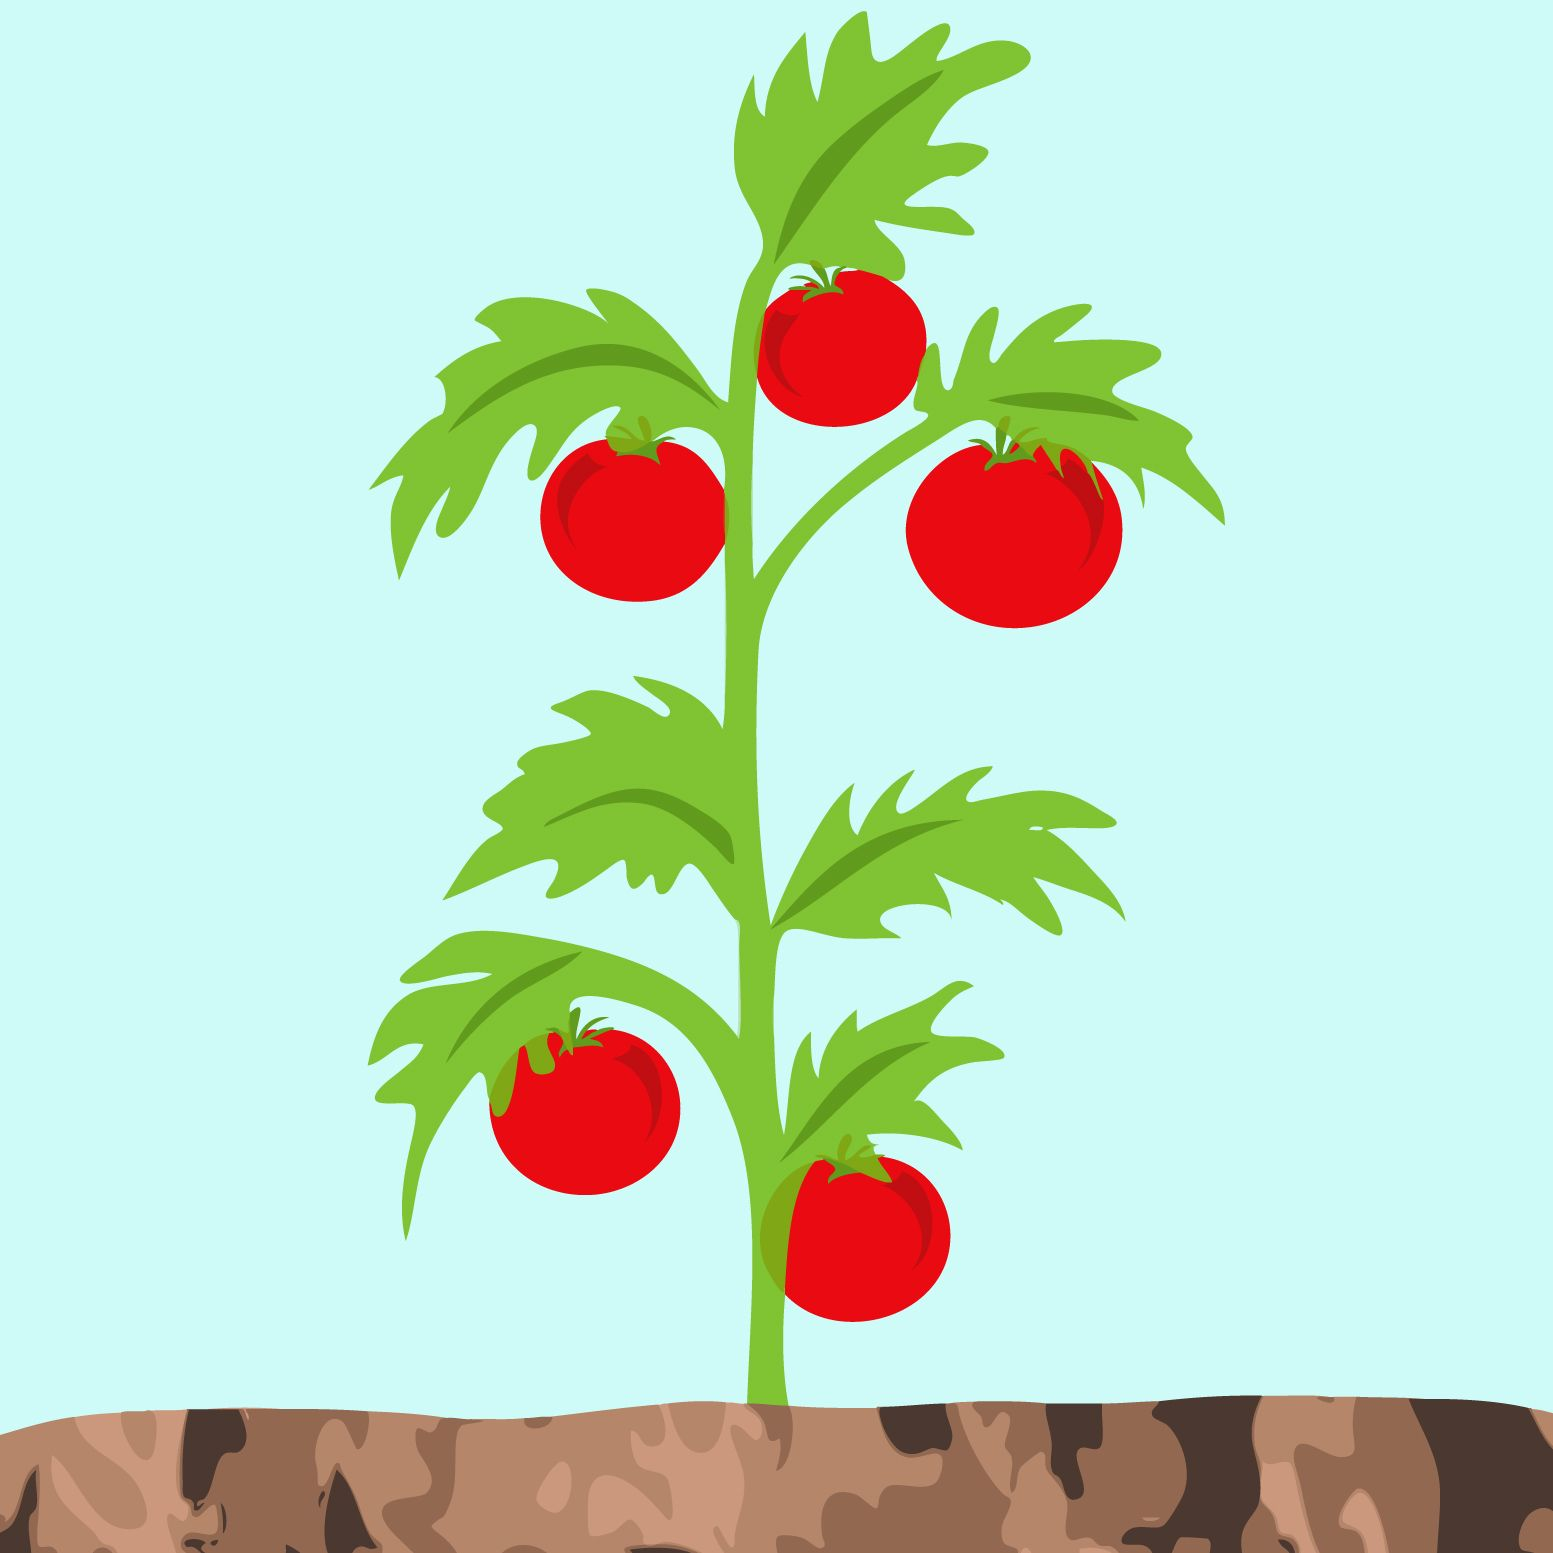 Image Result For Tomato Plant Drawing Tomato Plants Tomato Plant Drawing Plants